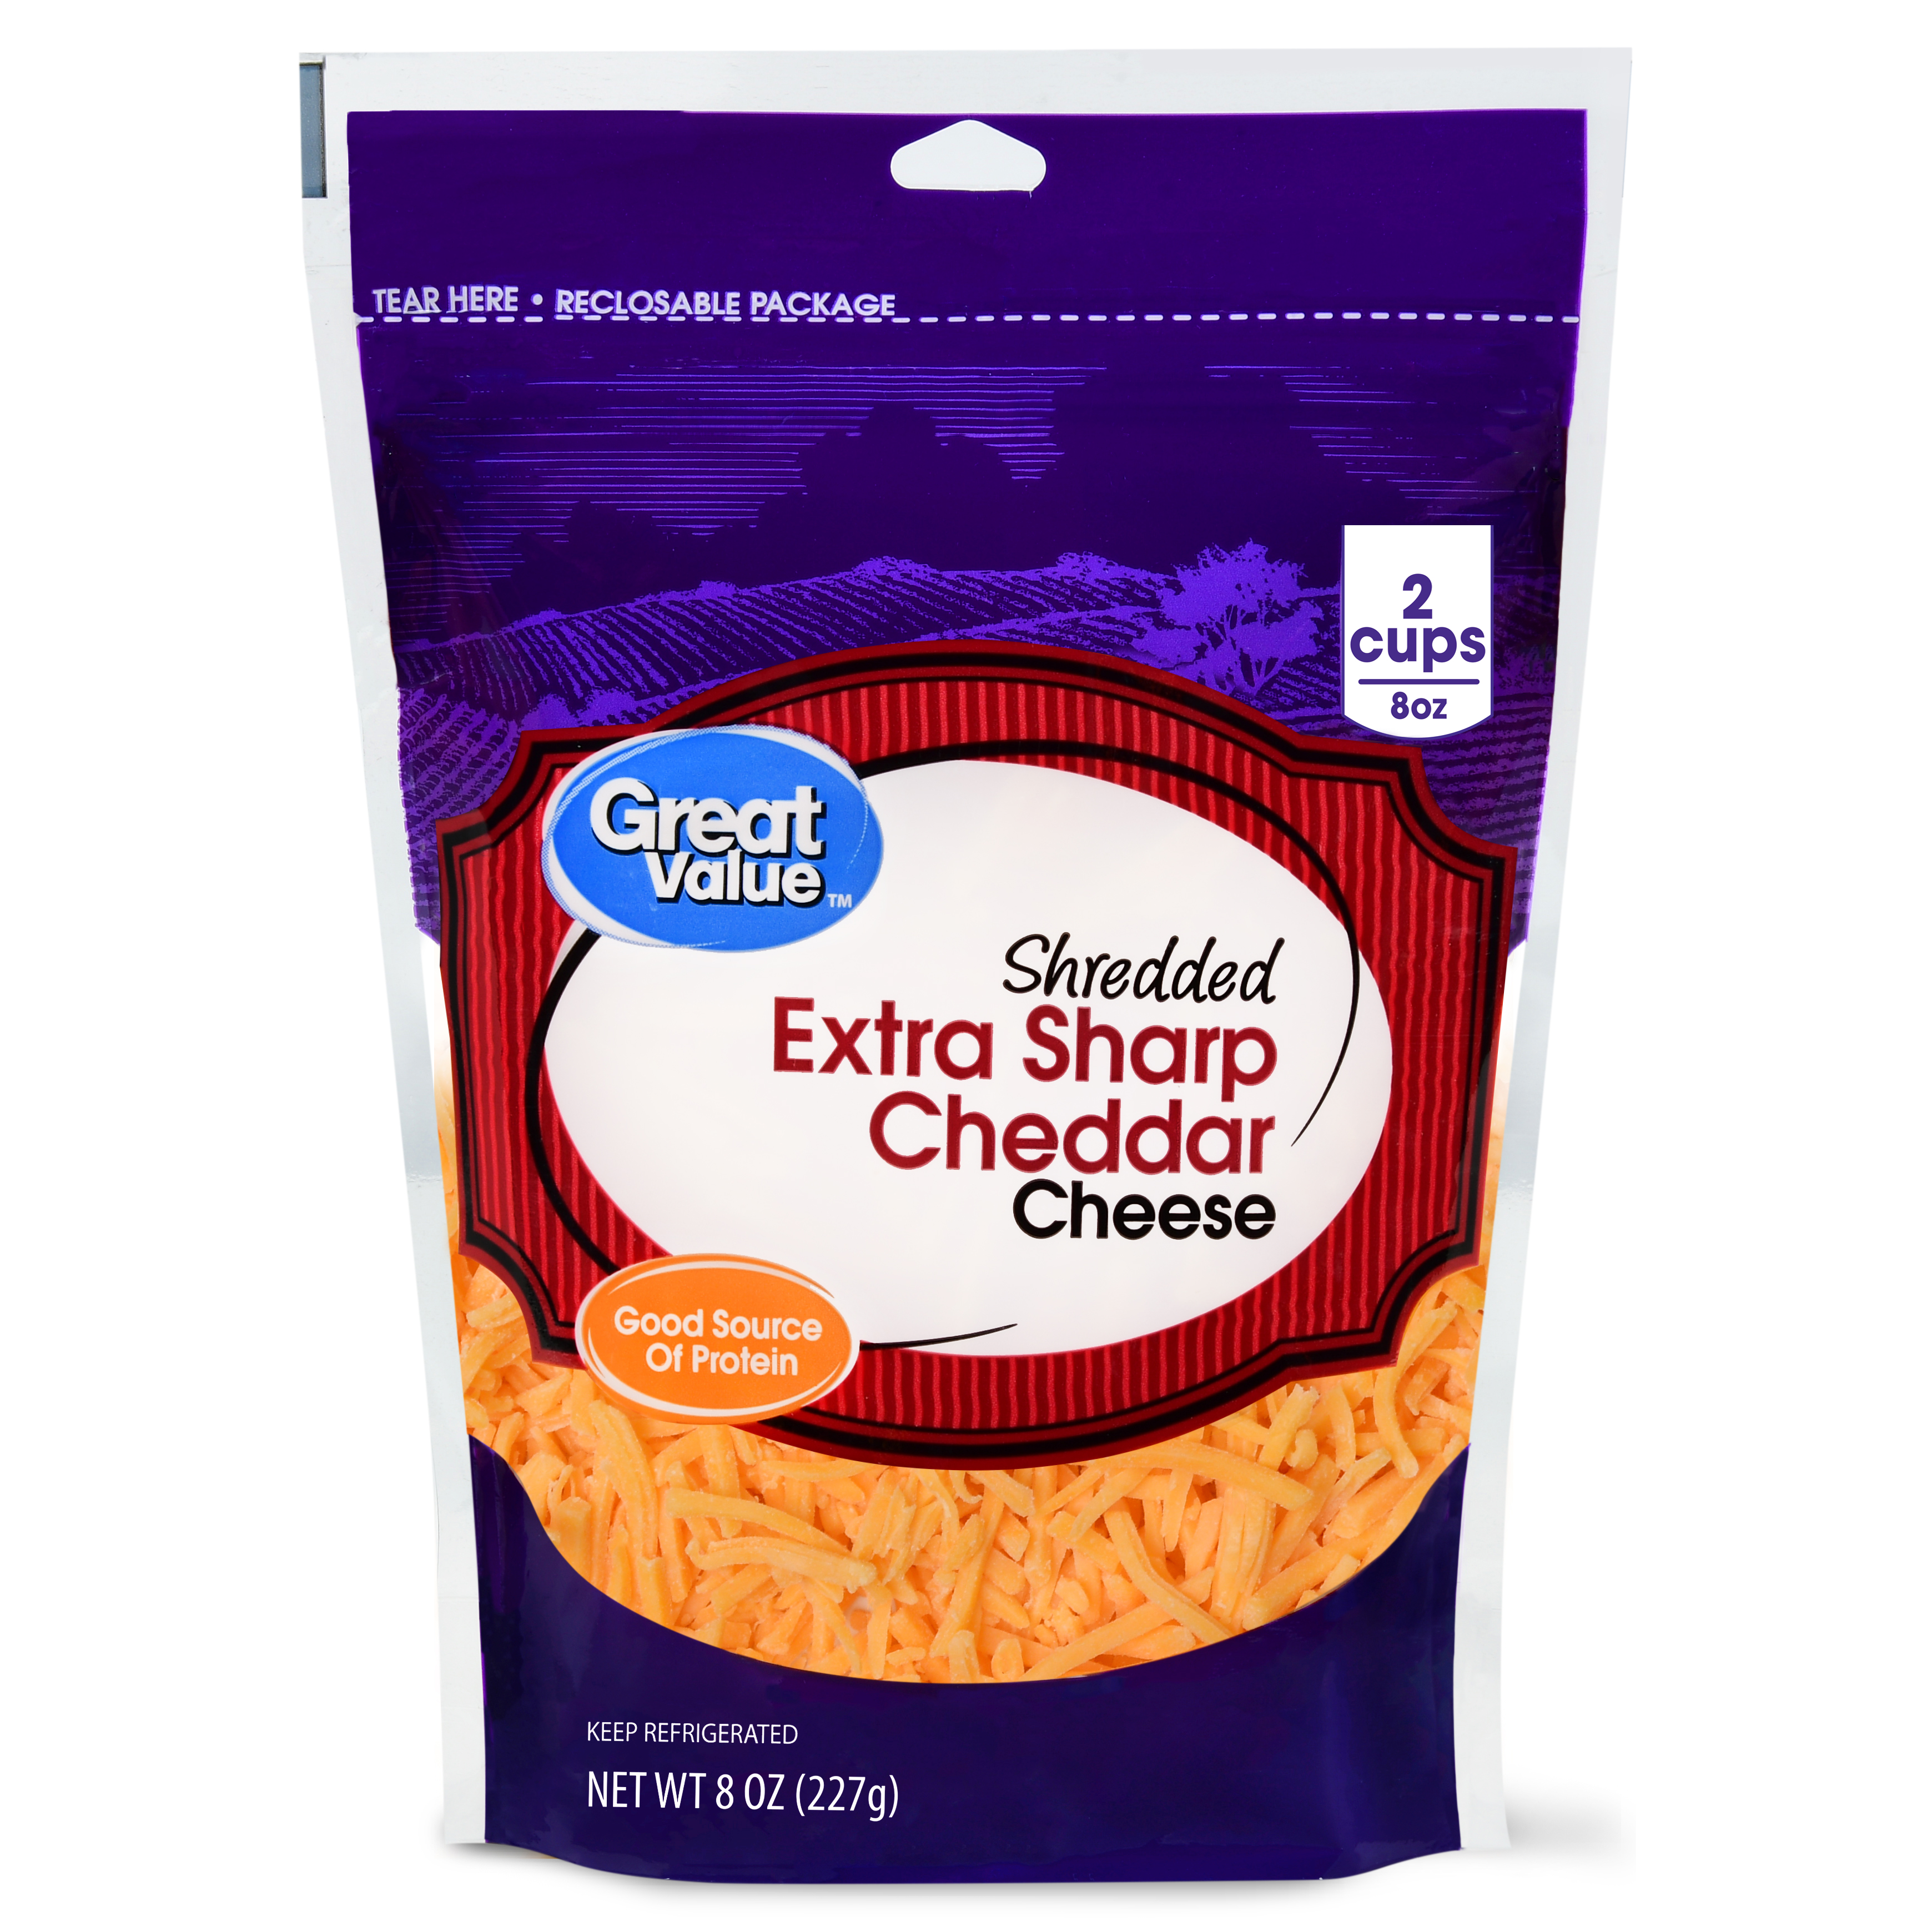 Great Value Shredded Cheddar Cheese, Extra Sharp, 8 oz